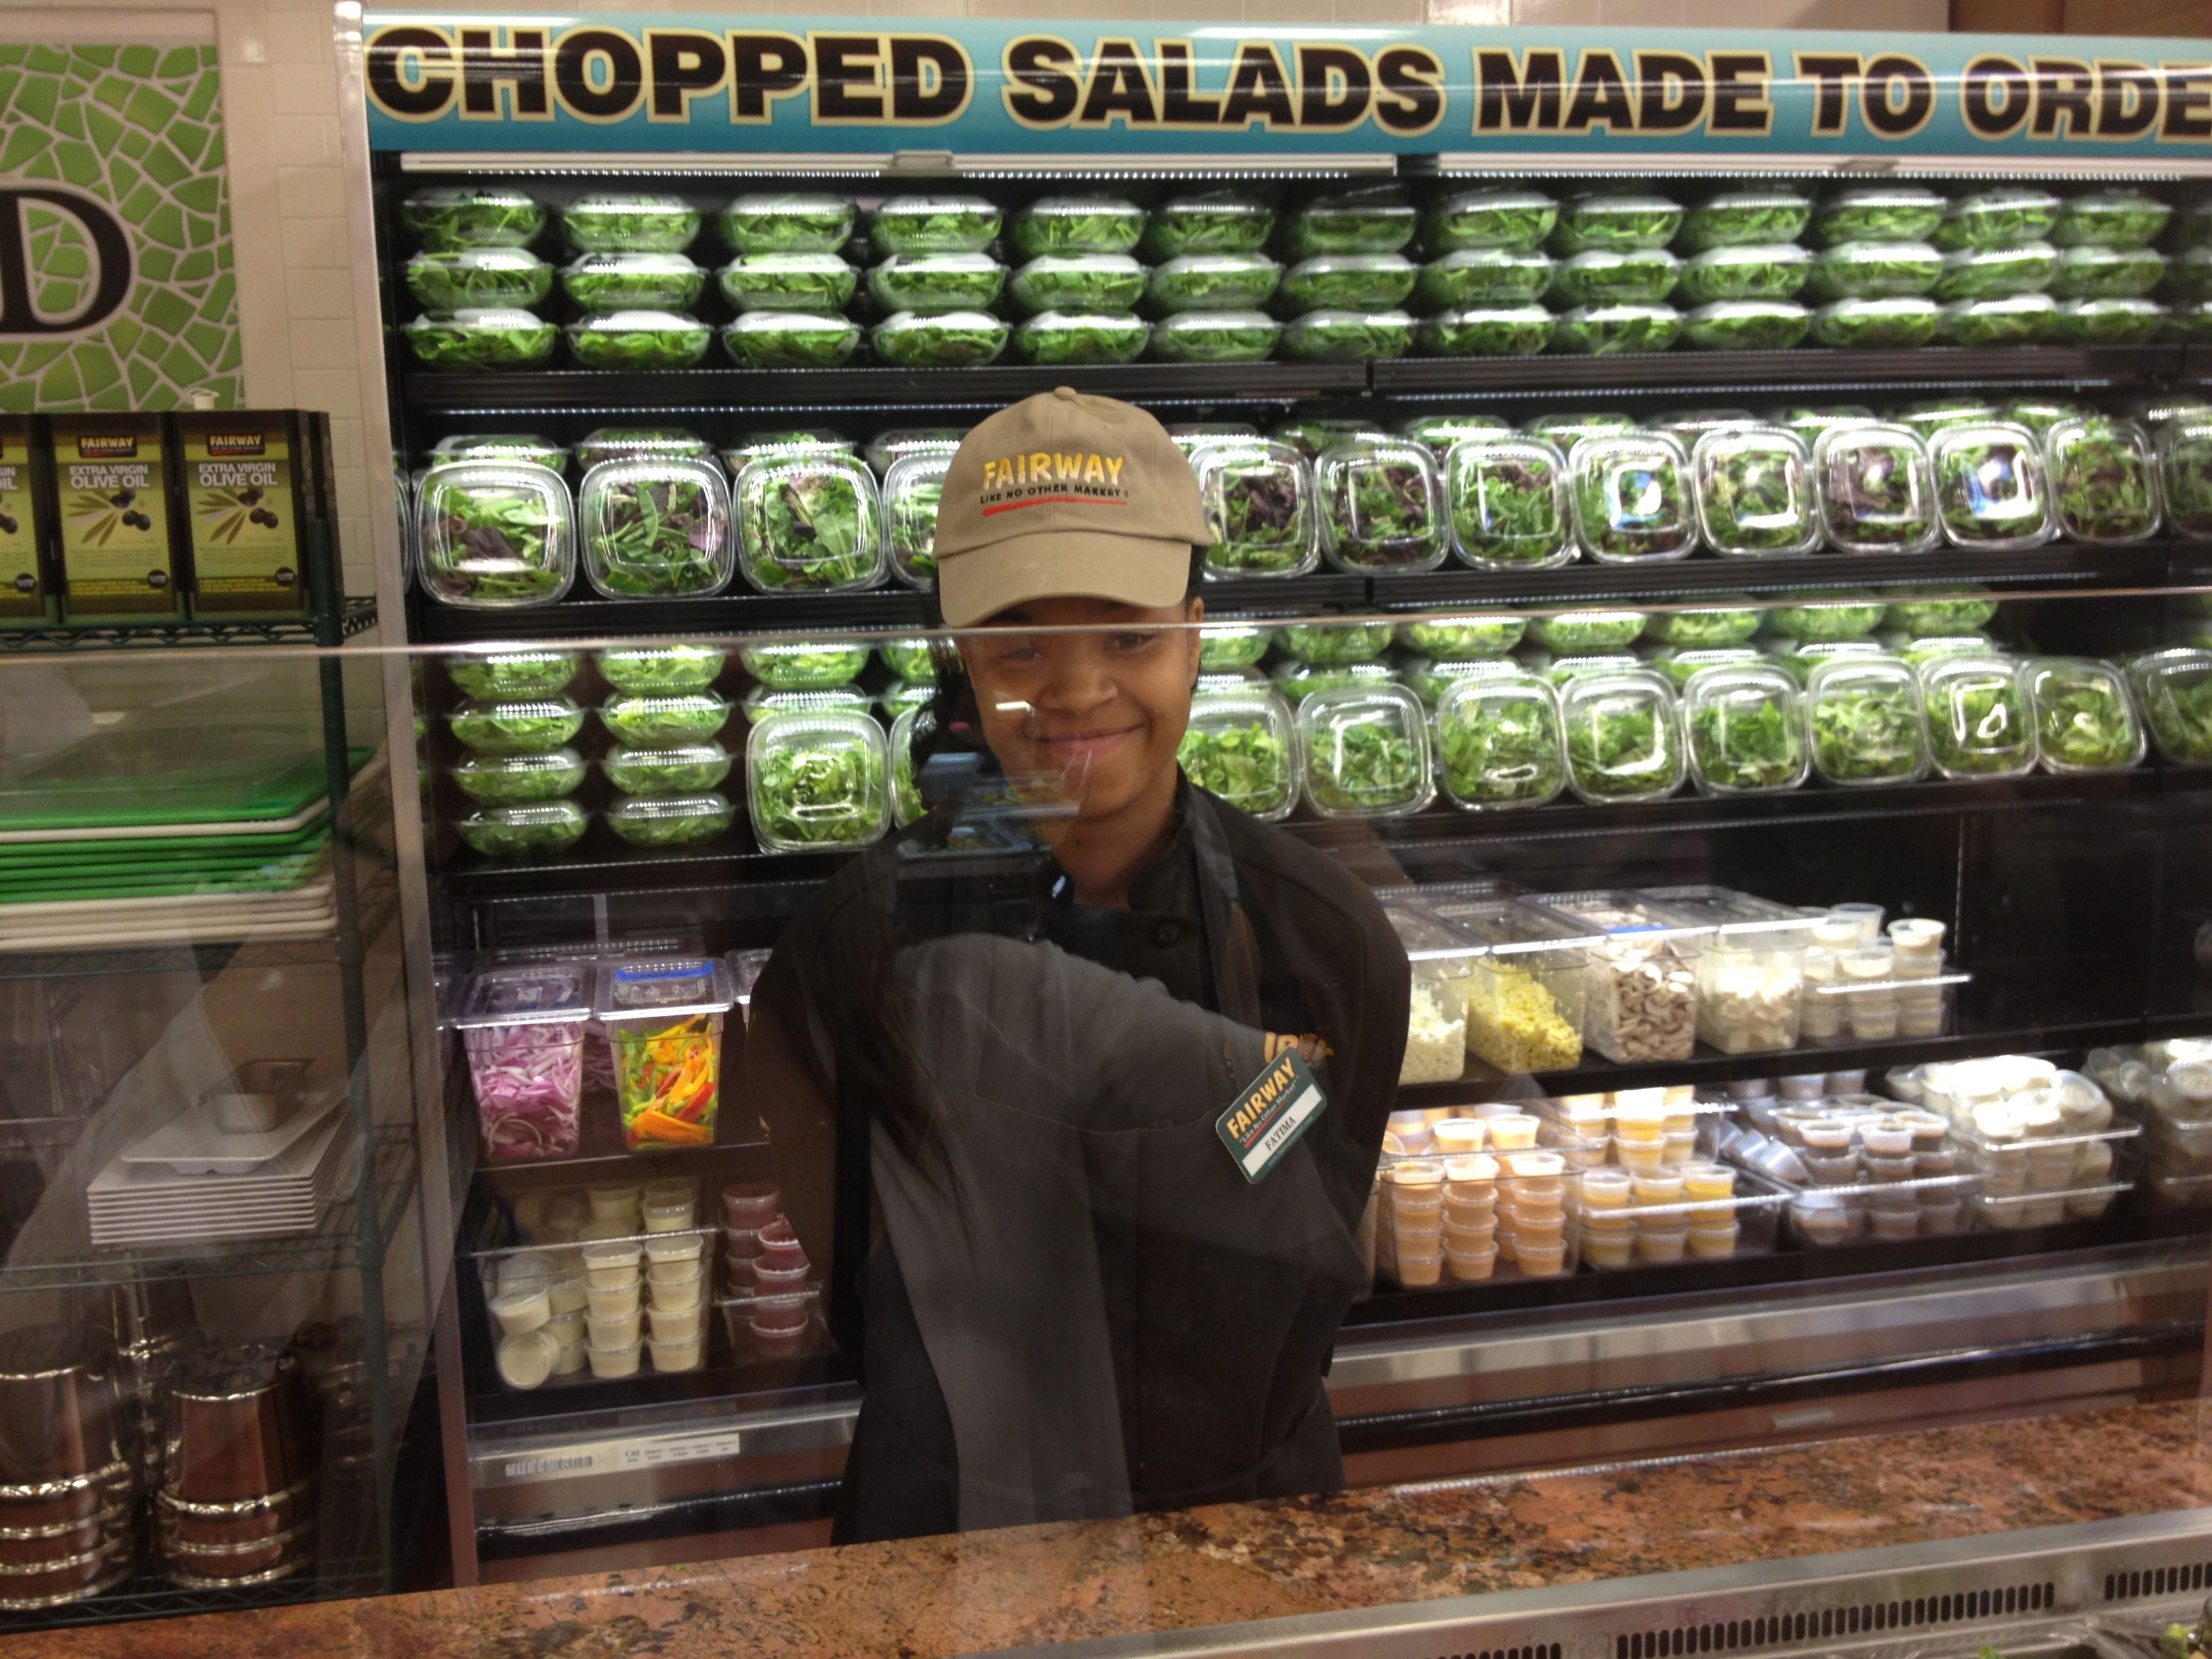 Fairway Shop Fresh Salad Bar At Fairway Market Westbury Let Us Know